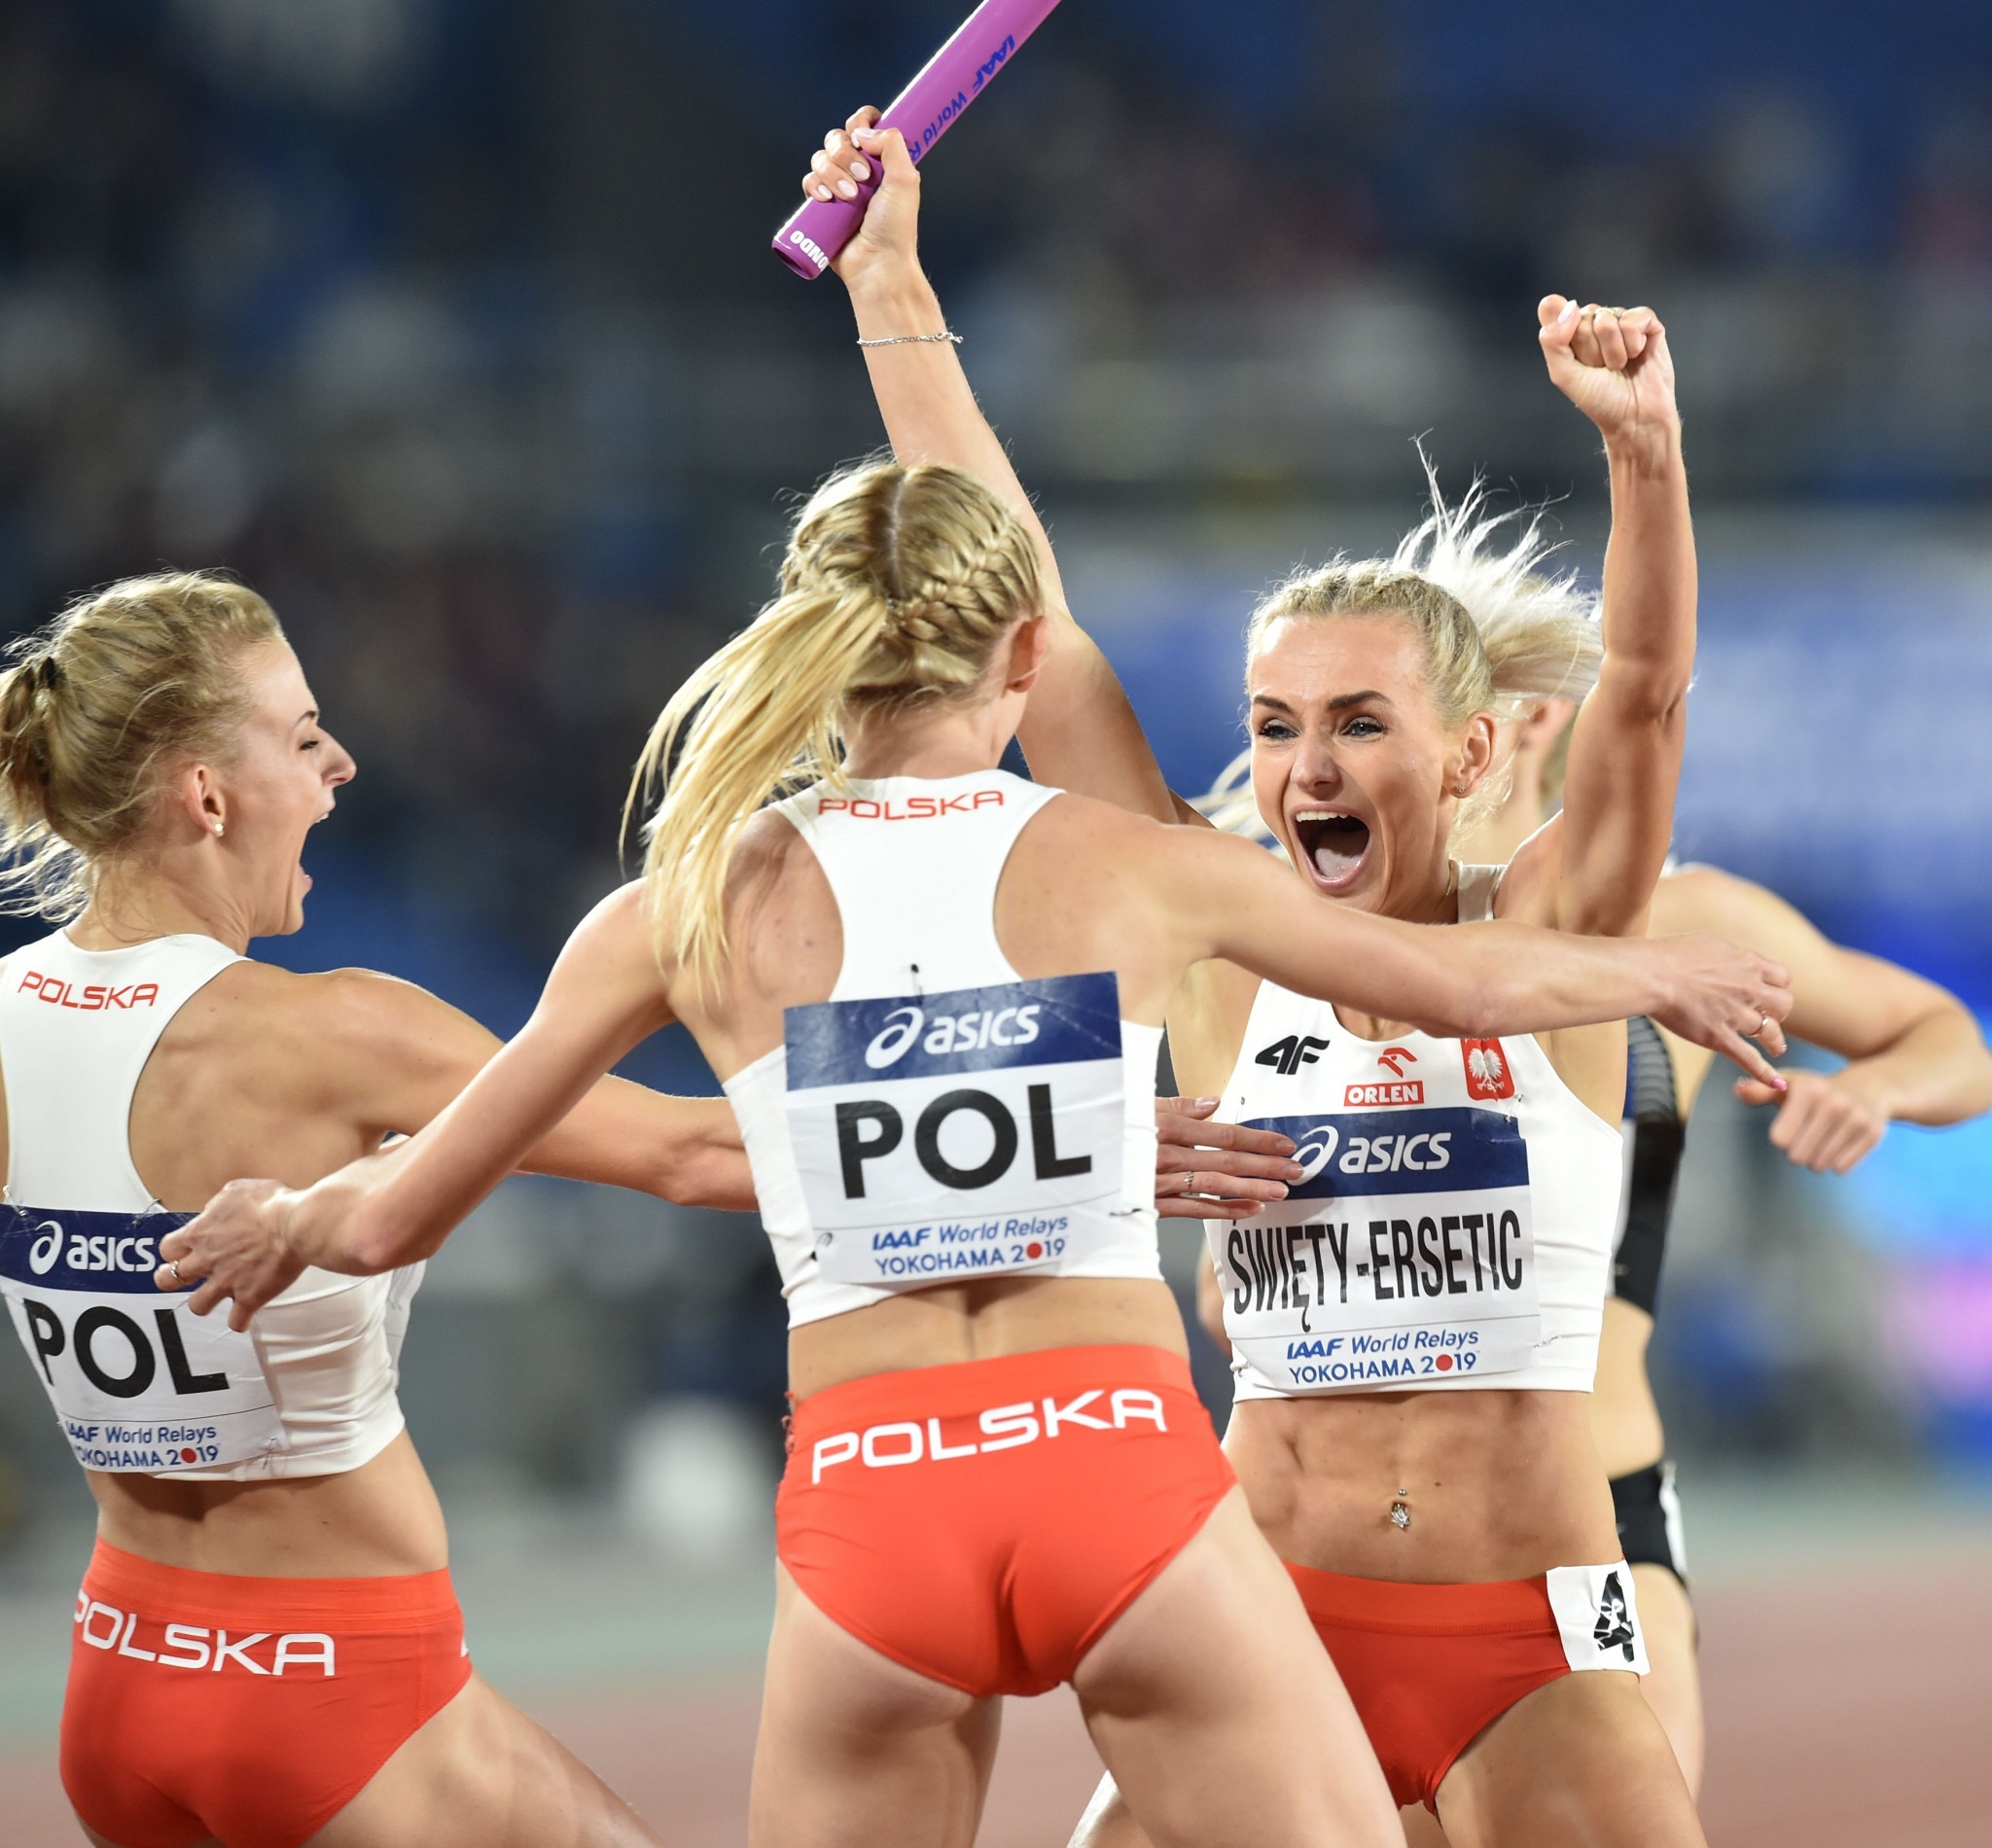 Poland and Germany set to go head to head for European Athletics Team Championships Super League as nations aim to avoid five relegation spots